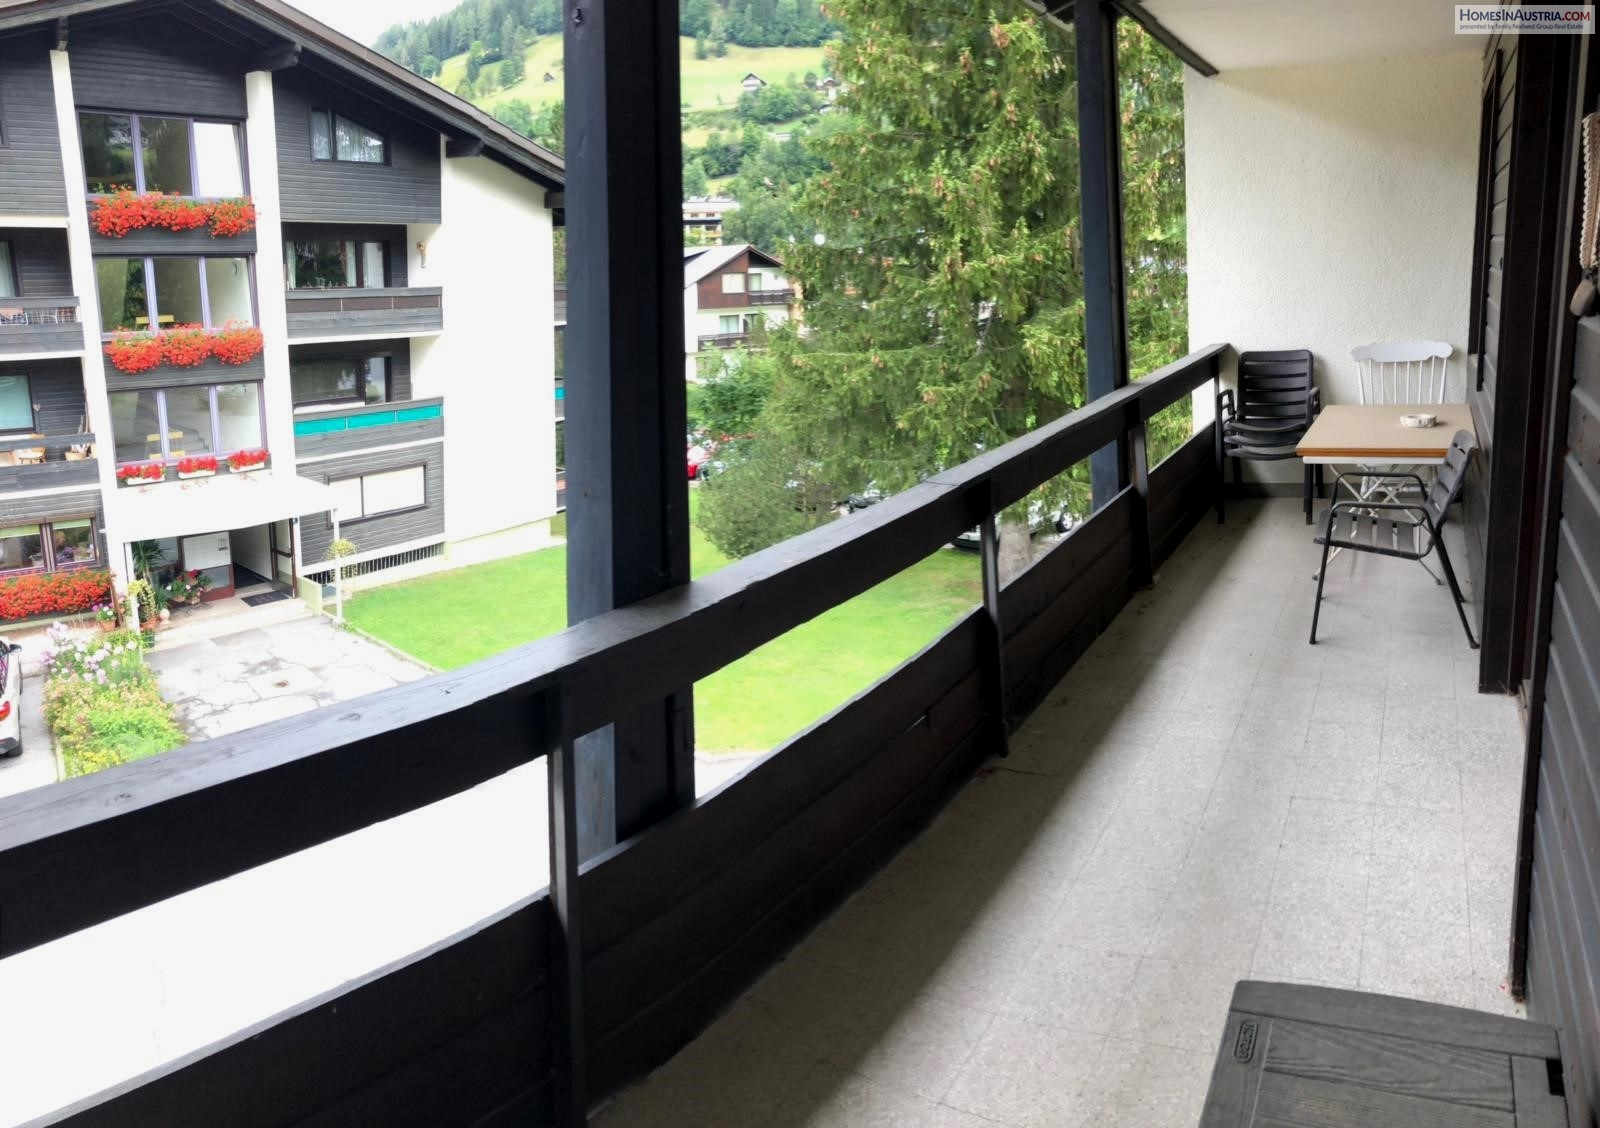 Bad Kleinkirchheim, Carinthia, Holiday Apartment (DRAGI) with one bedroom and balcony